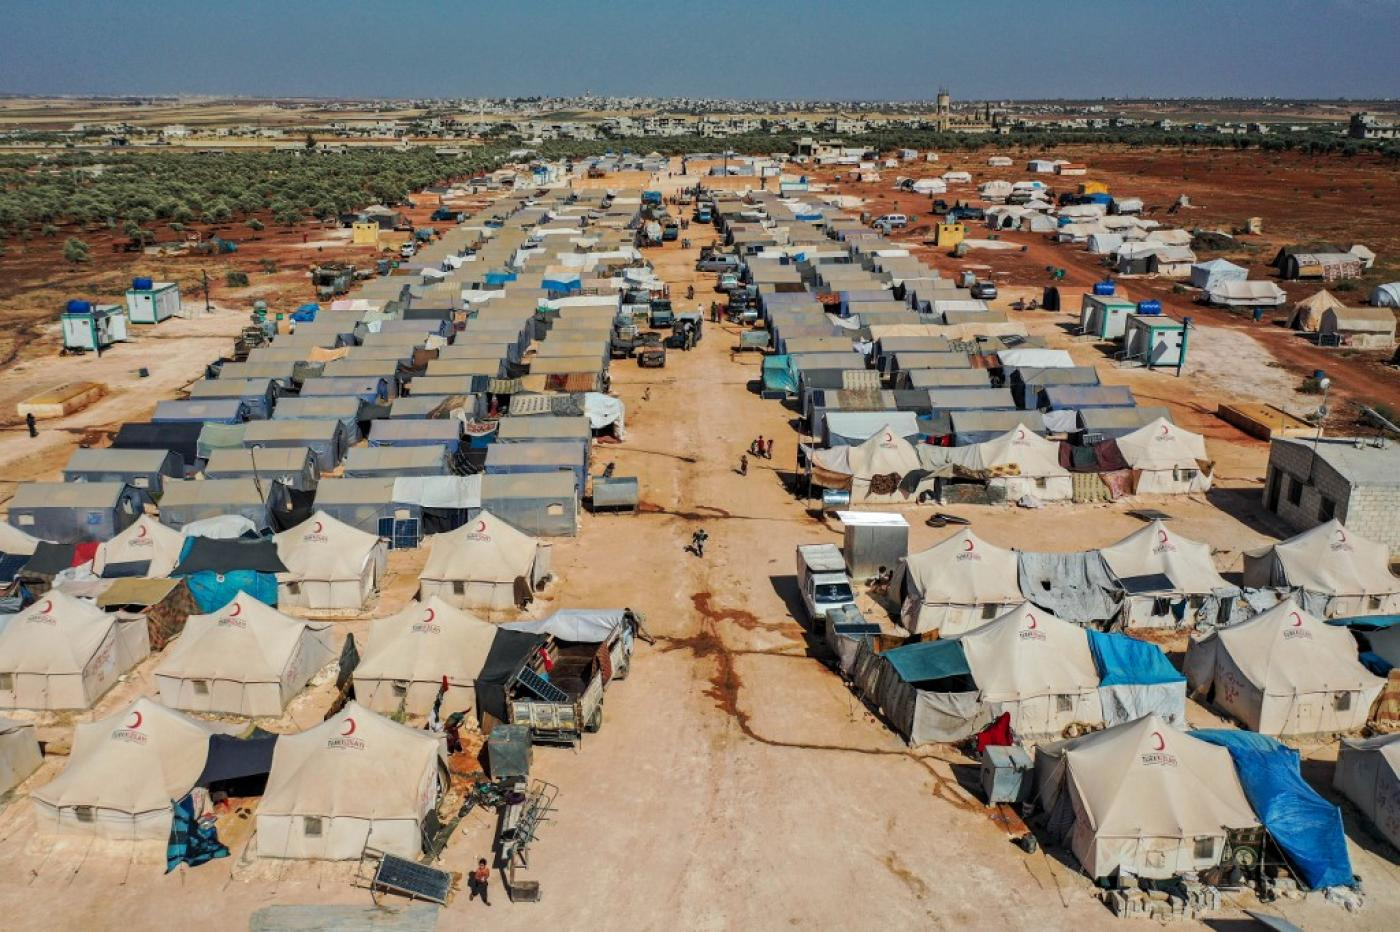 A view over Azraq camp for displaced Syrians near the town of Maaret Misrin in Syria's northwestern Idlib province on 9 July (AFP/File photo)